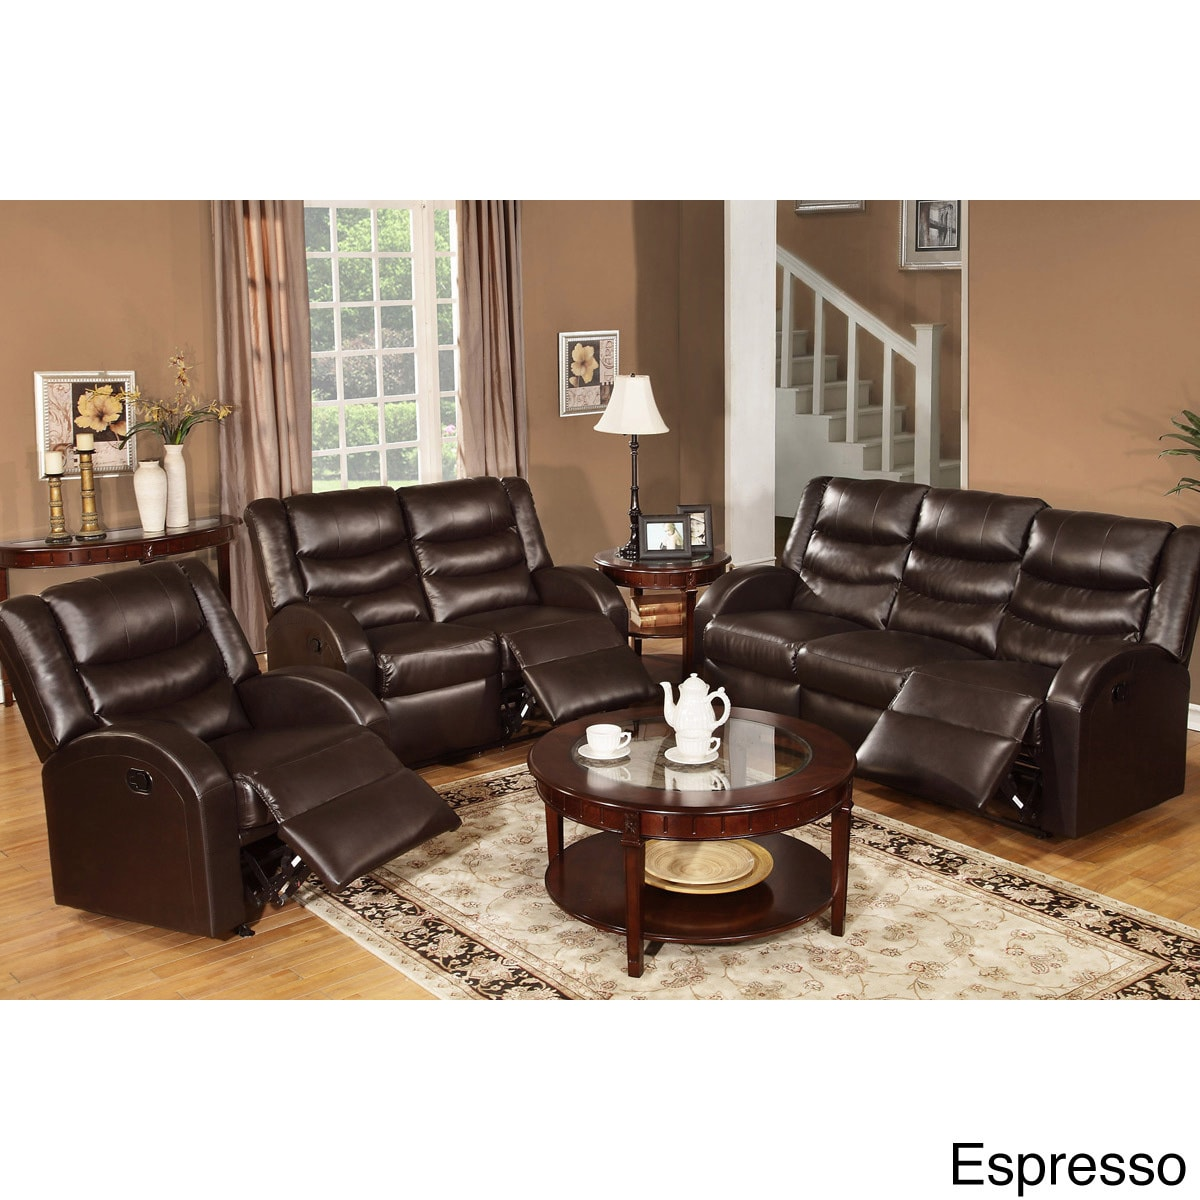 https://ak1.ostkcdn.com//images/products/9052263/Rouen-Bonded-Leather-Recliner-Motion-Living-Room-Set-43eec88c-f7ee-4b28-b6f5-8596ce0cab77.jpg